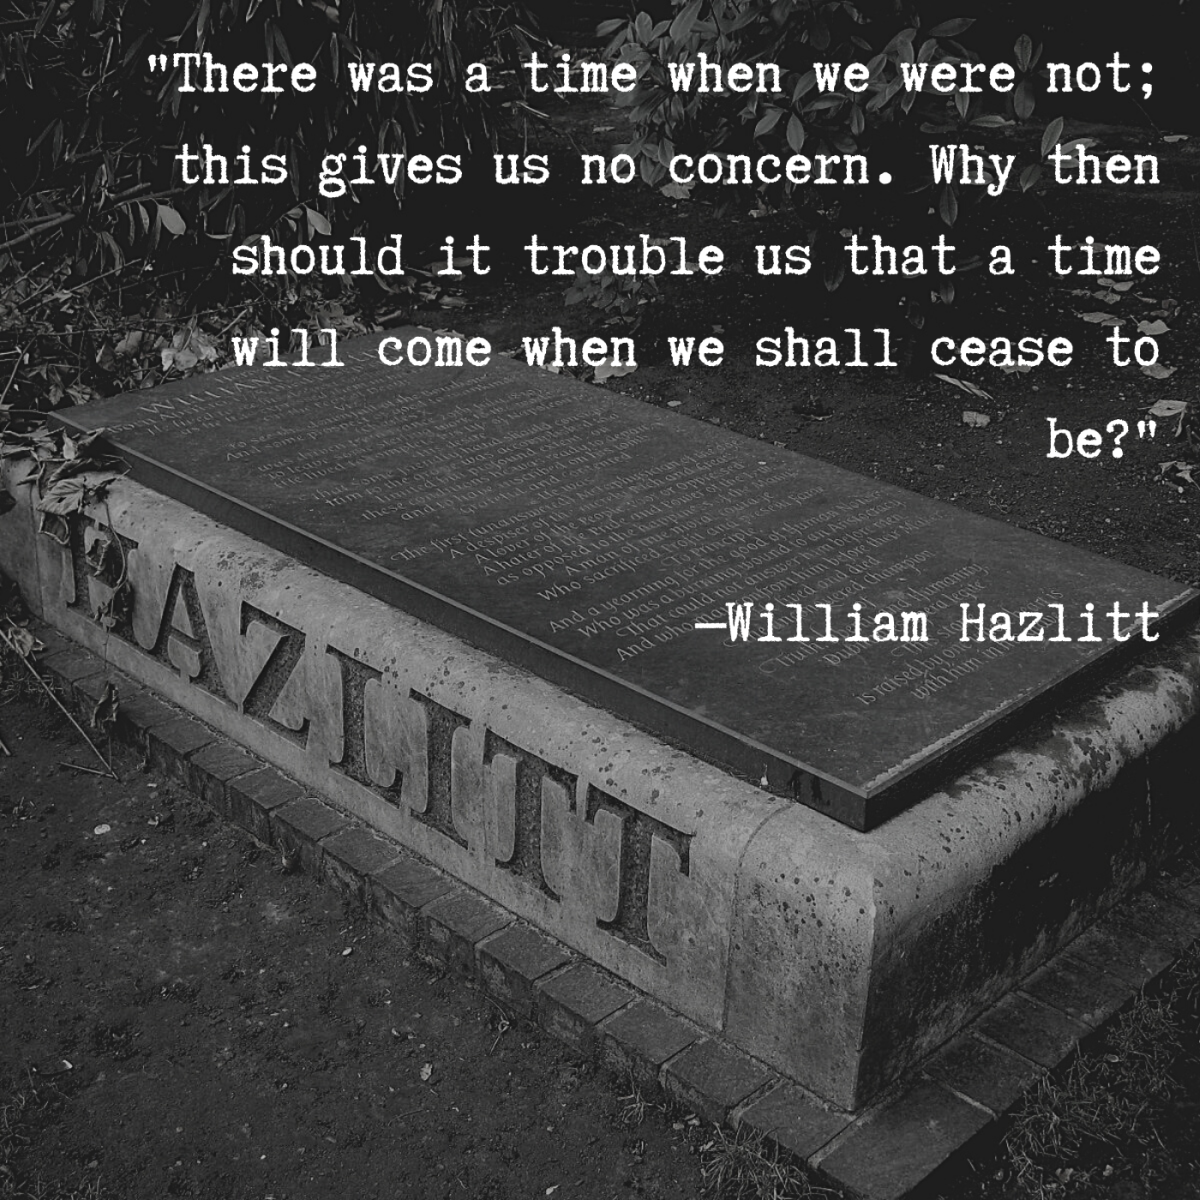 """There was a time when we were not; this gives us no concern. Why then should it trouble us that a time will come when we shall cease to be?"" —William Hazlitt"